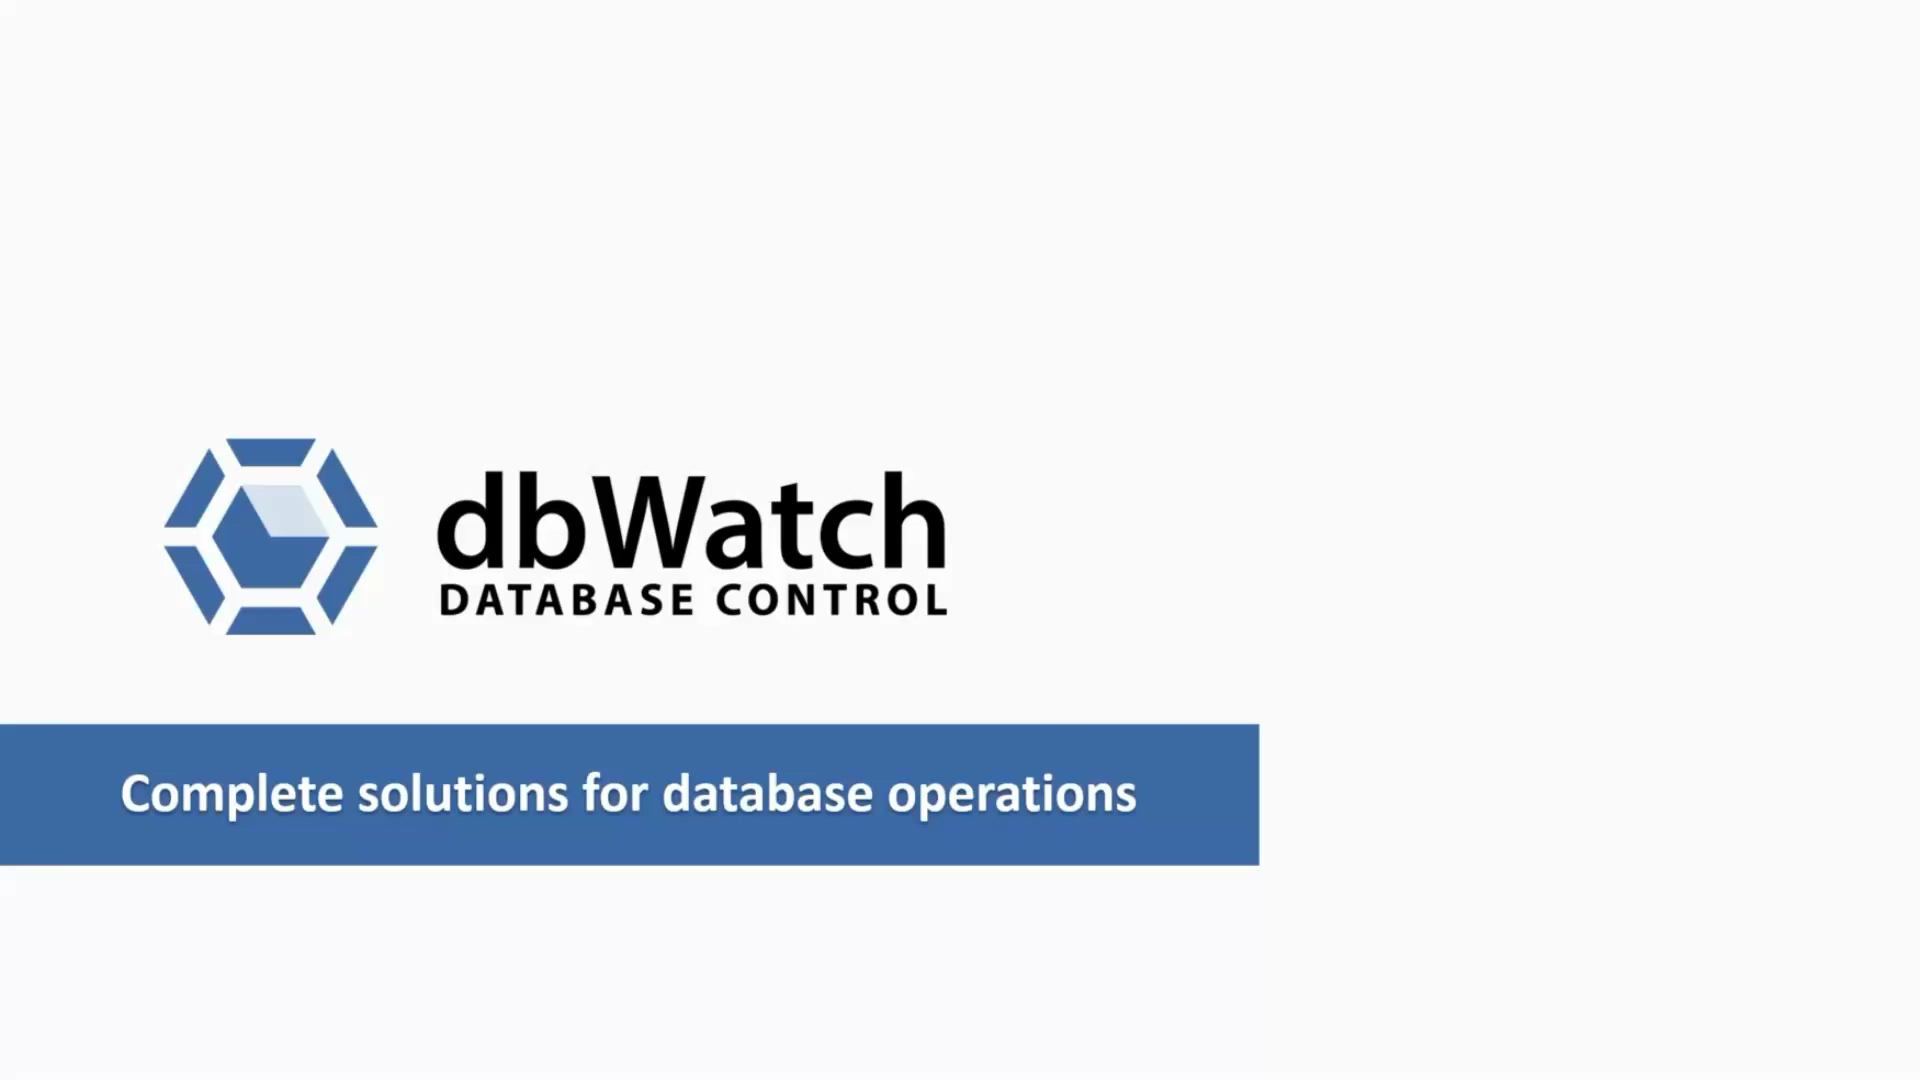 dbWatch Episode 1 May 21, 2019-1